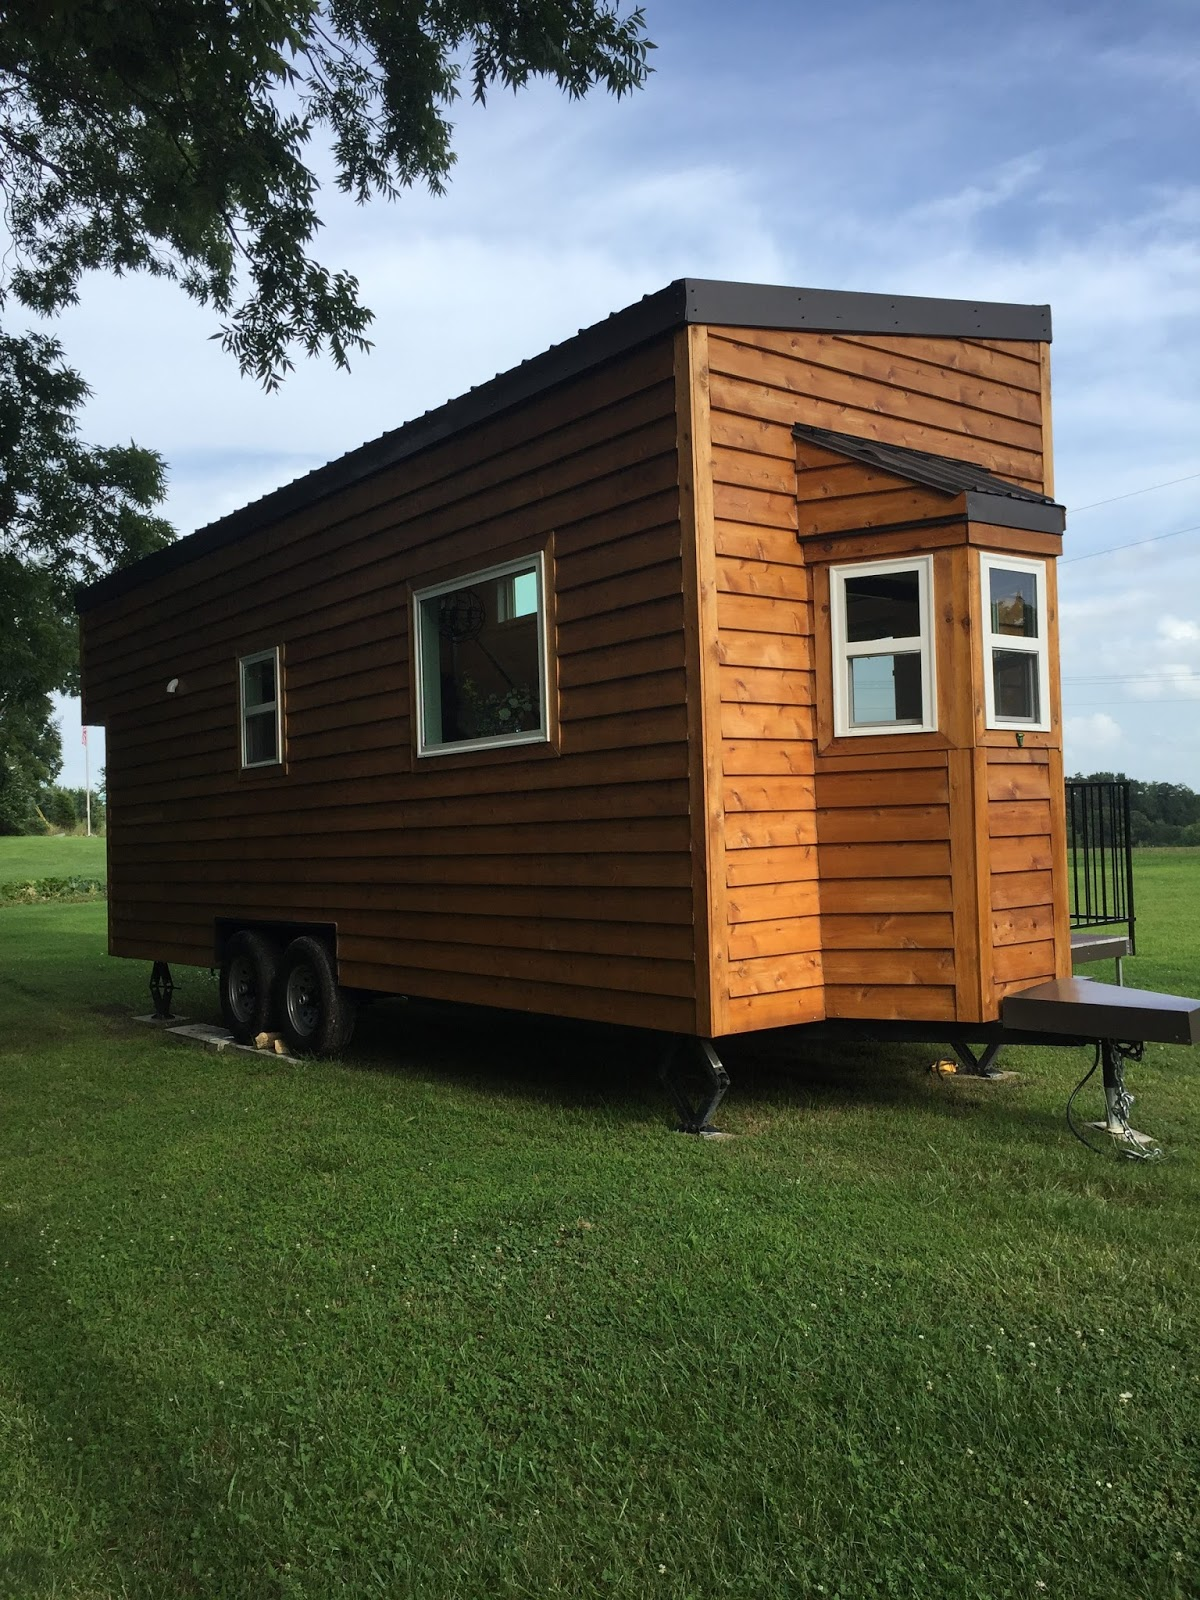 The Tennessee Tiny House 185 Sq Ft Tiny House Town Mendy 39 S